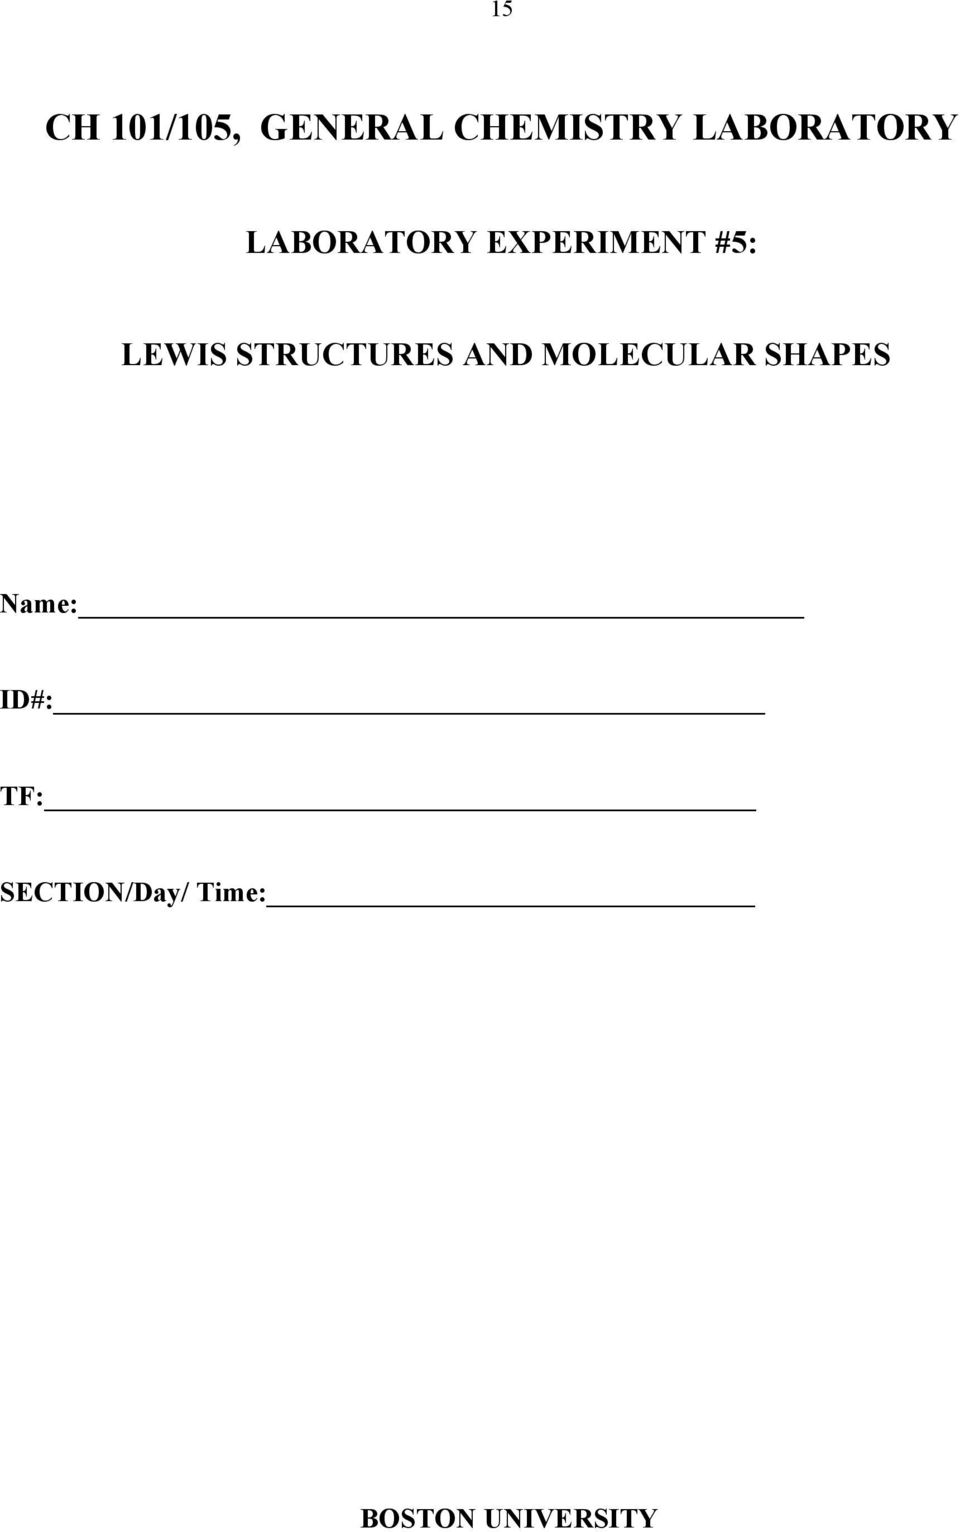 LEWI TRUCTURE AND MOLECULAR HAPE